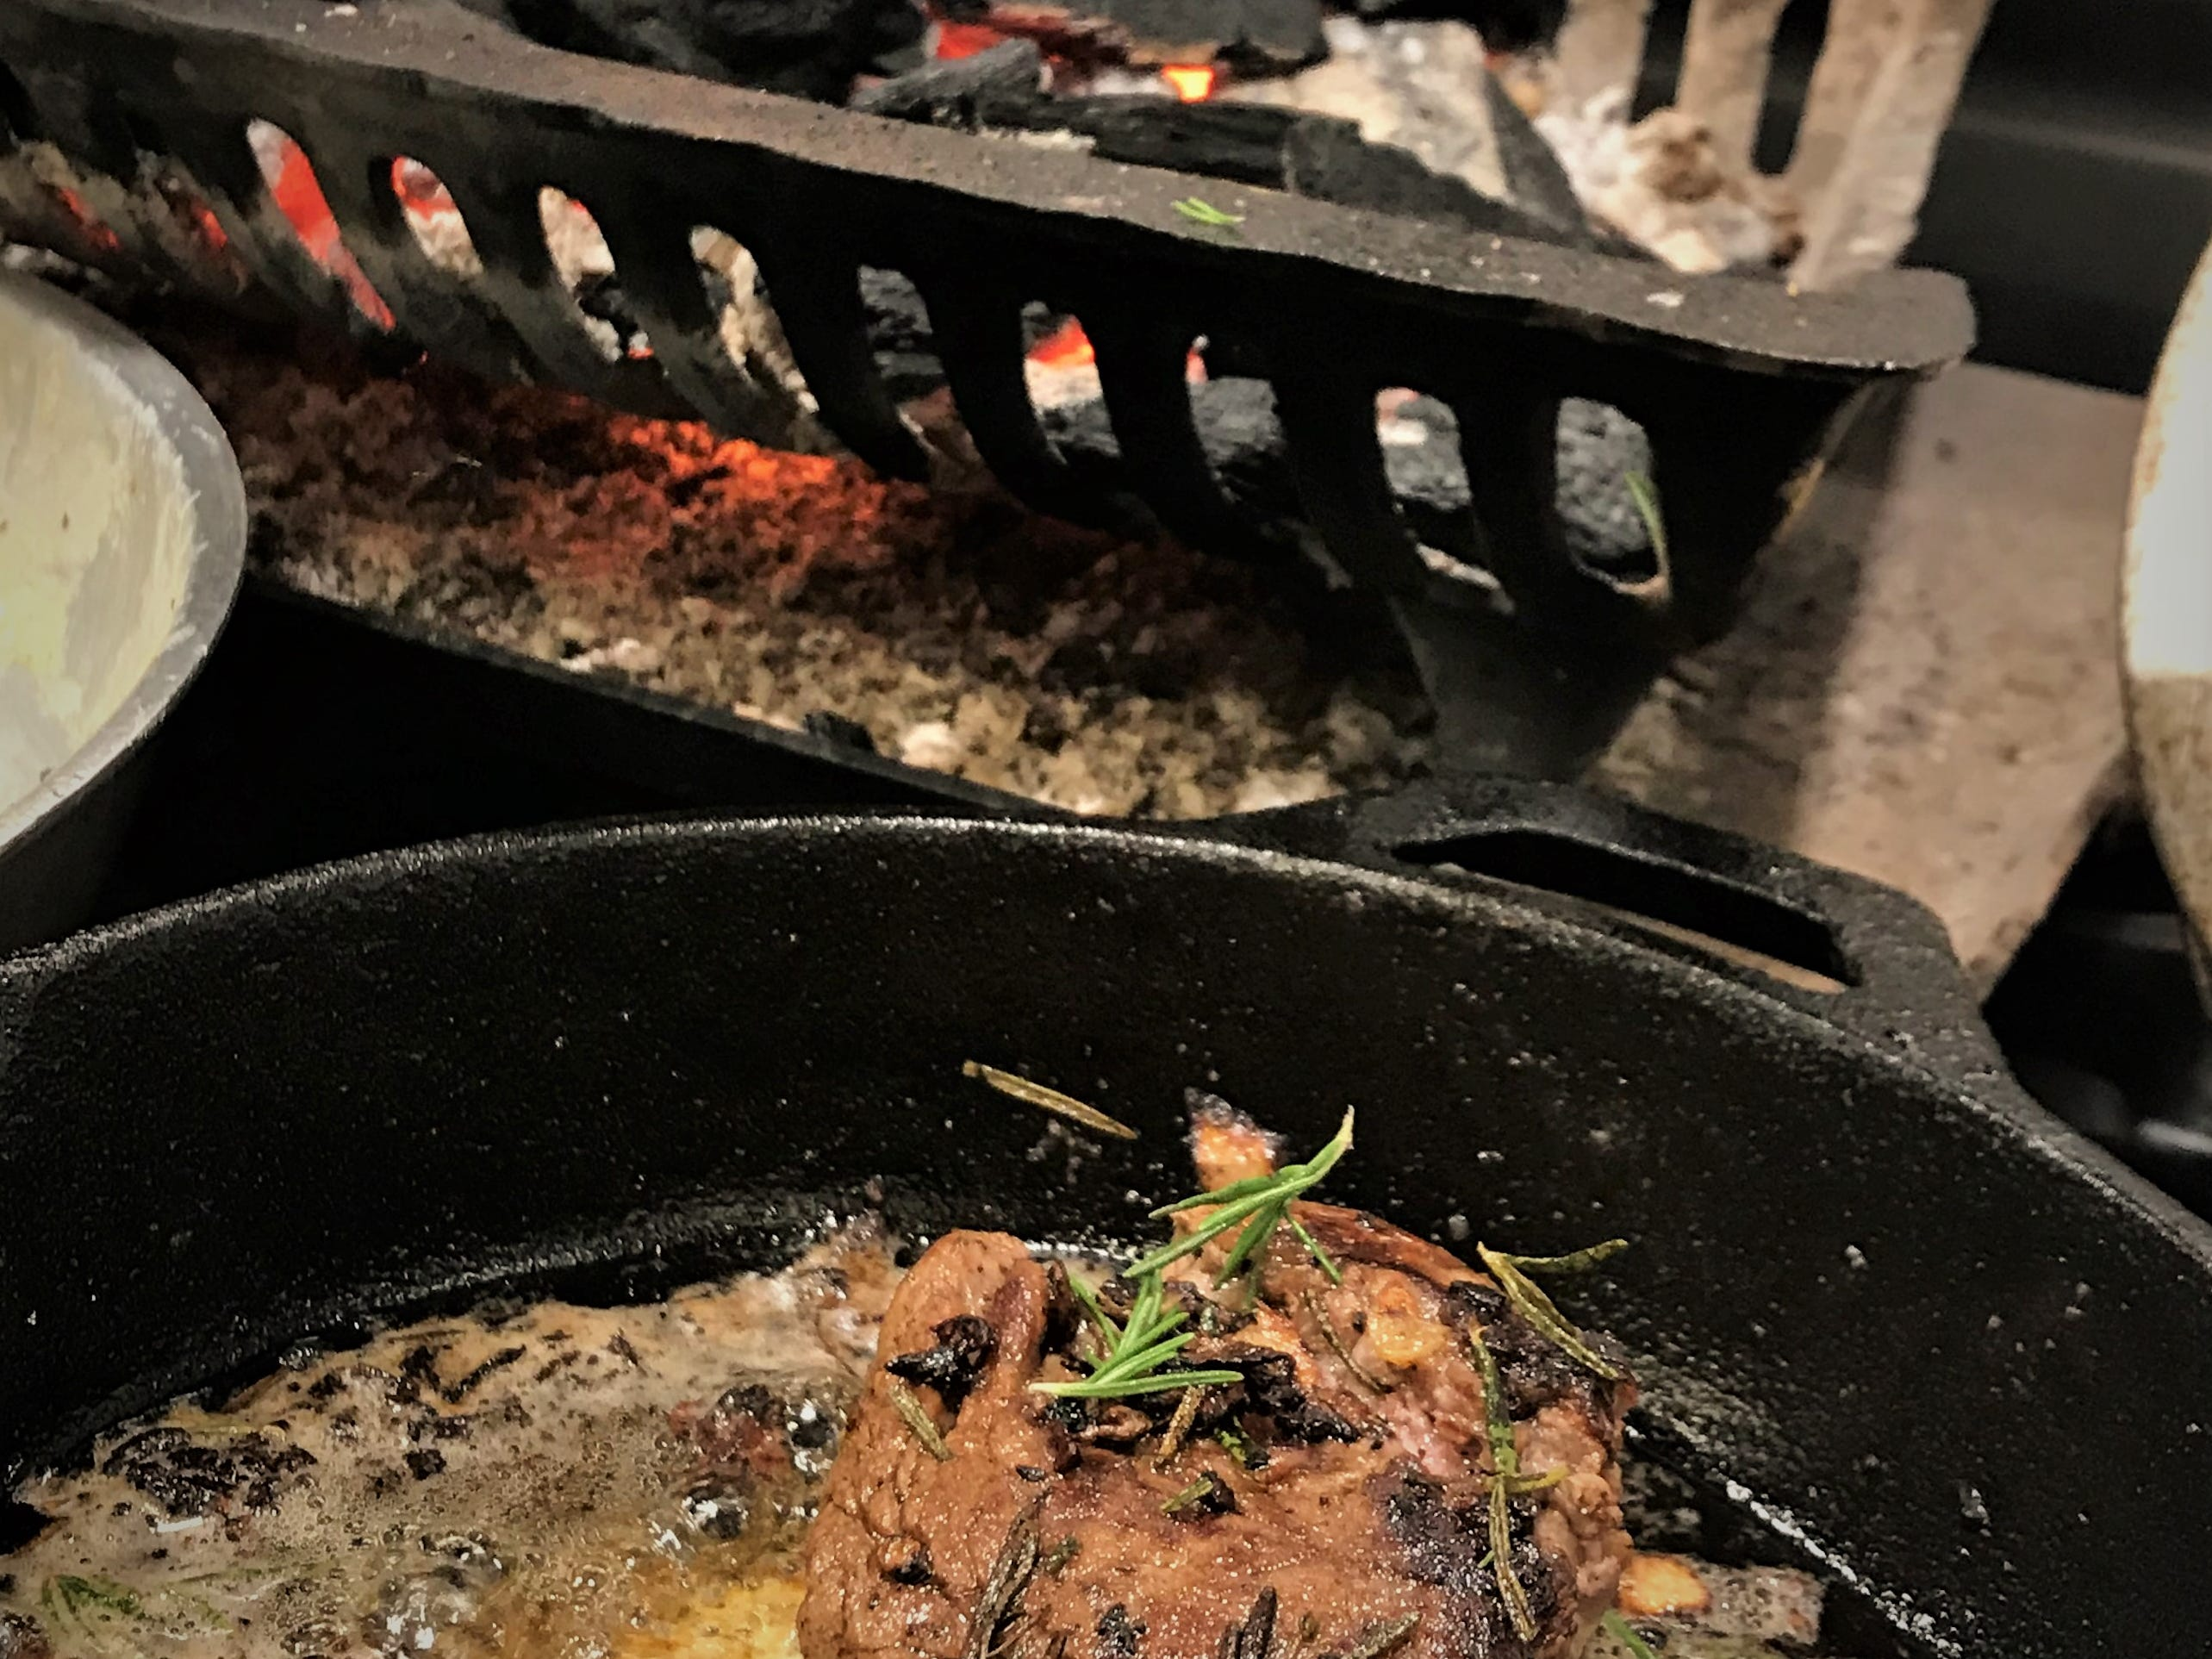 A brazier with wood charcoal is kept flaming all night for cooking Eisenhower ribeyes right on the coals at Amy's on Franklin. In front, a cast-iron seared filet mignon with rosemary and butter.